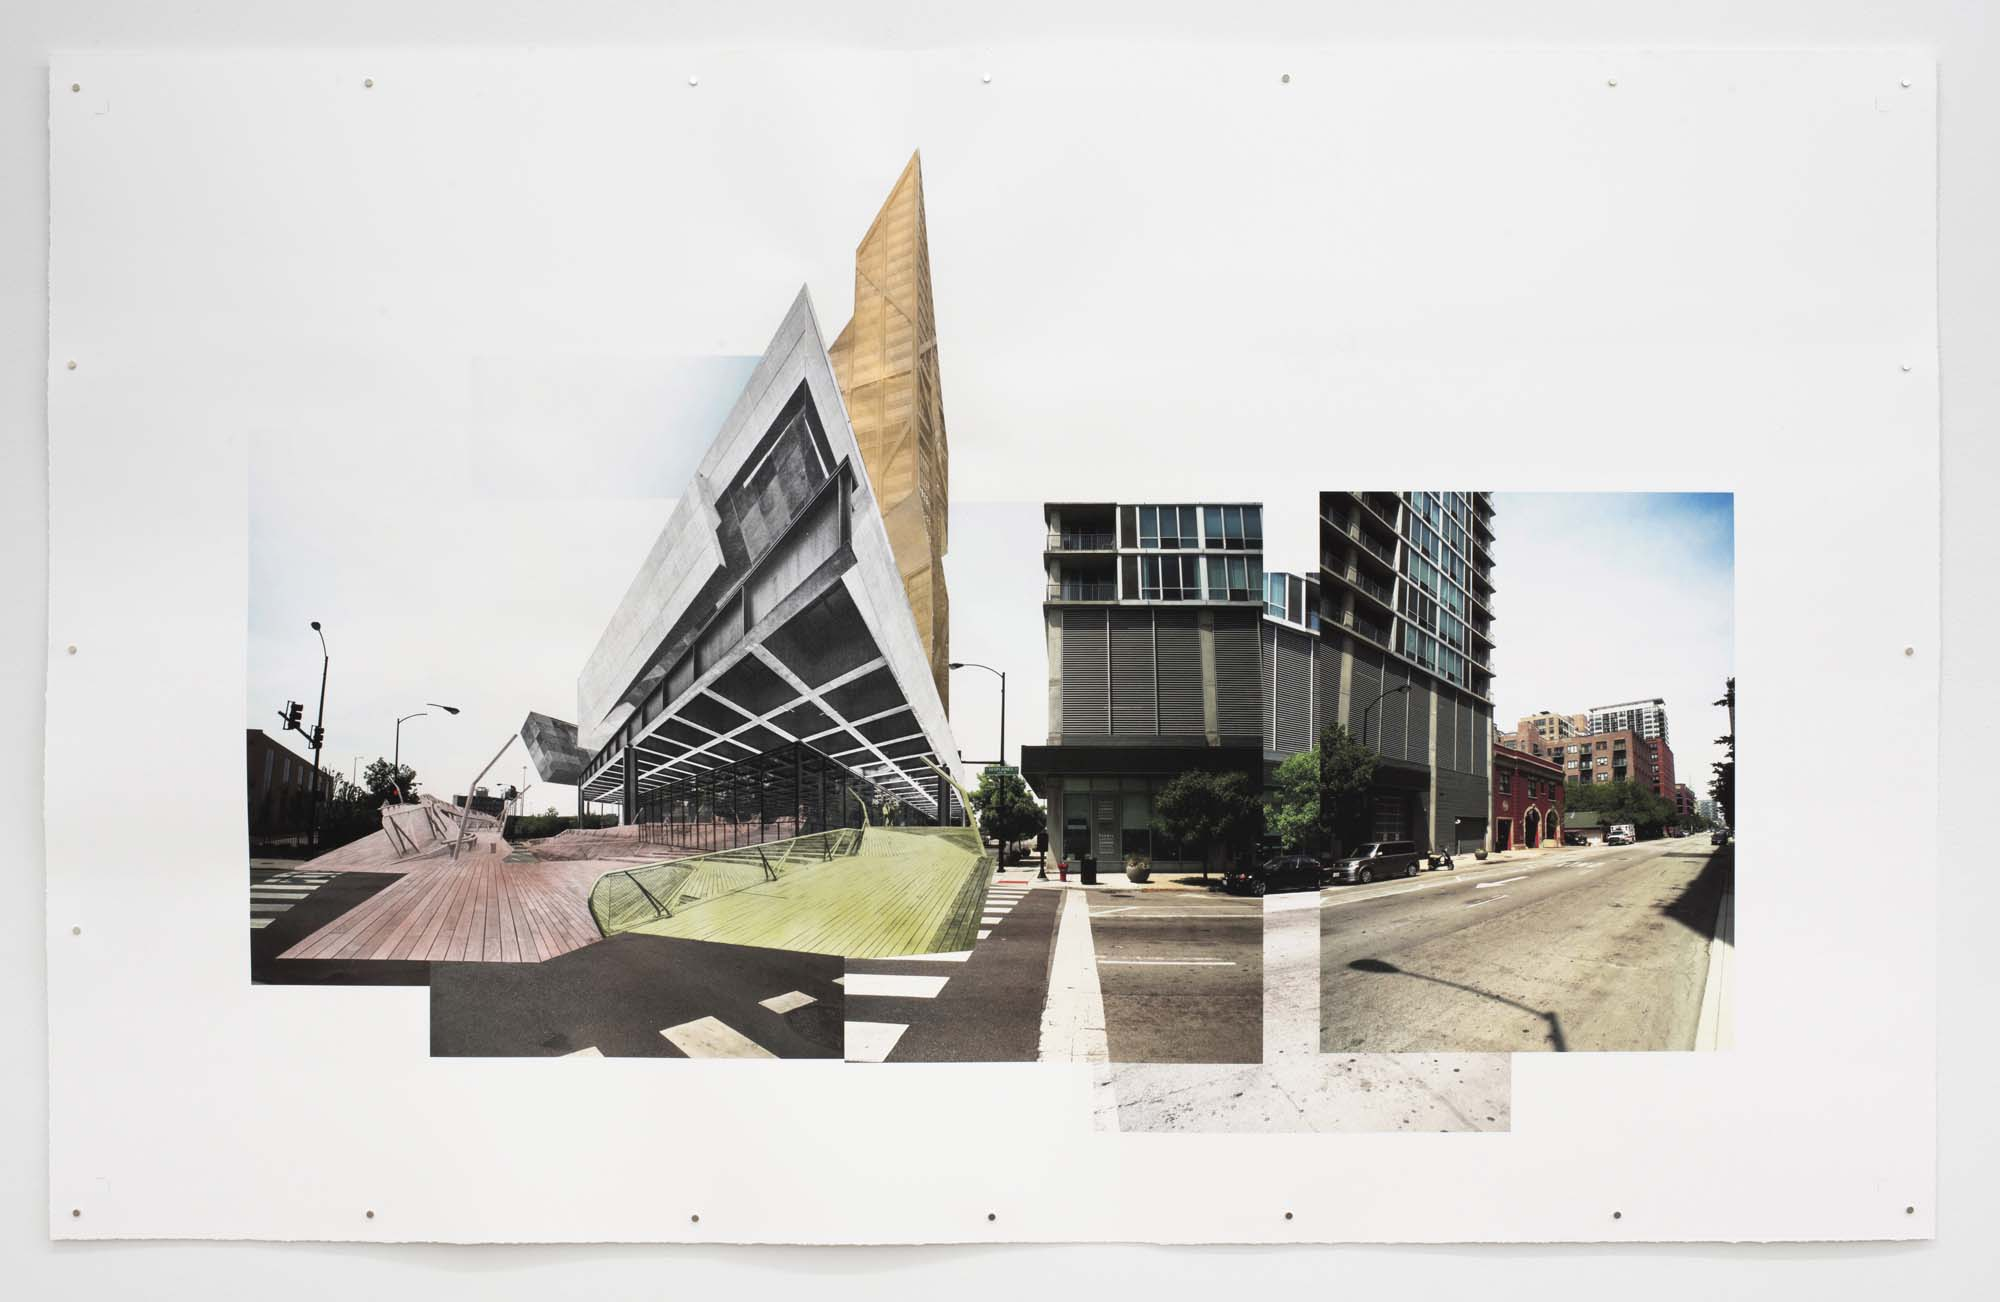 Socialist Stock Exchange 3 2013, photomontage on paper, 40 x 64 inches